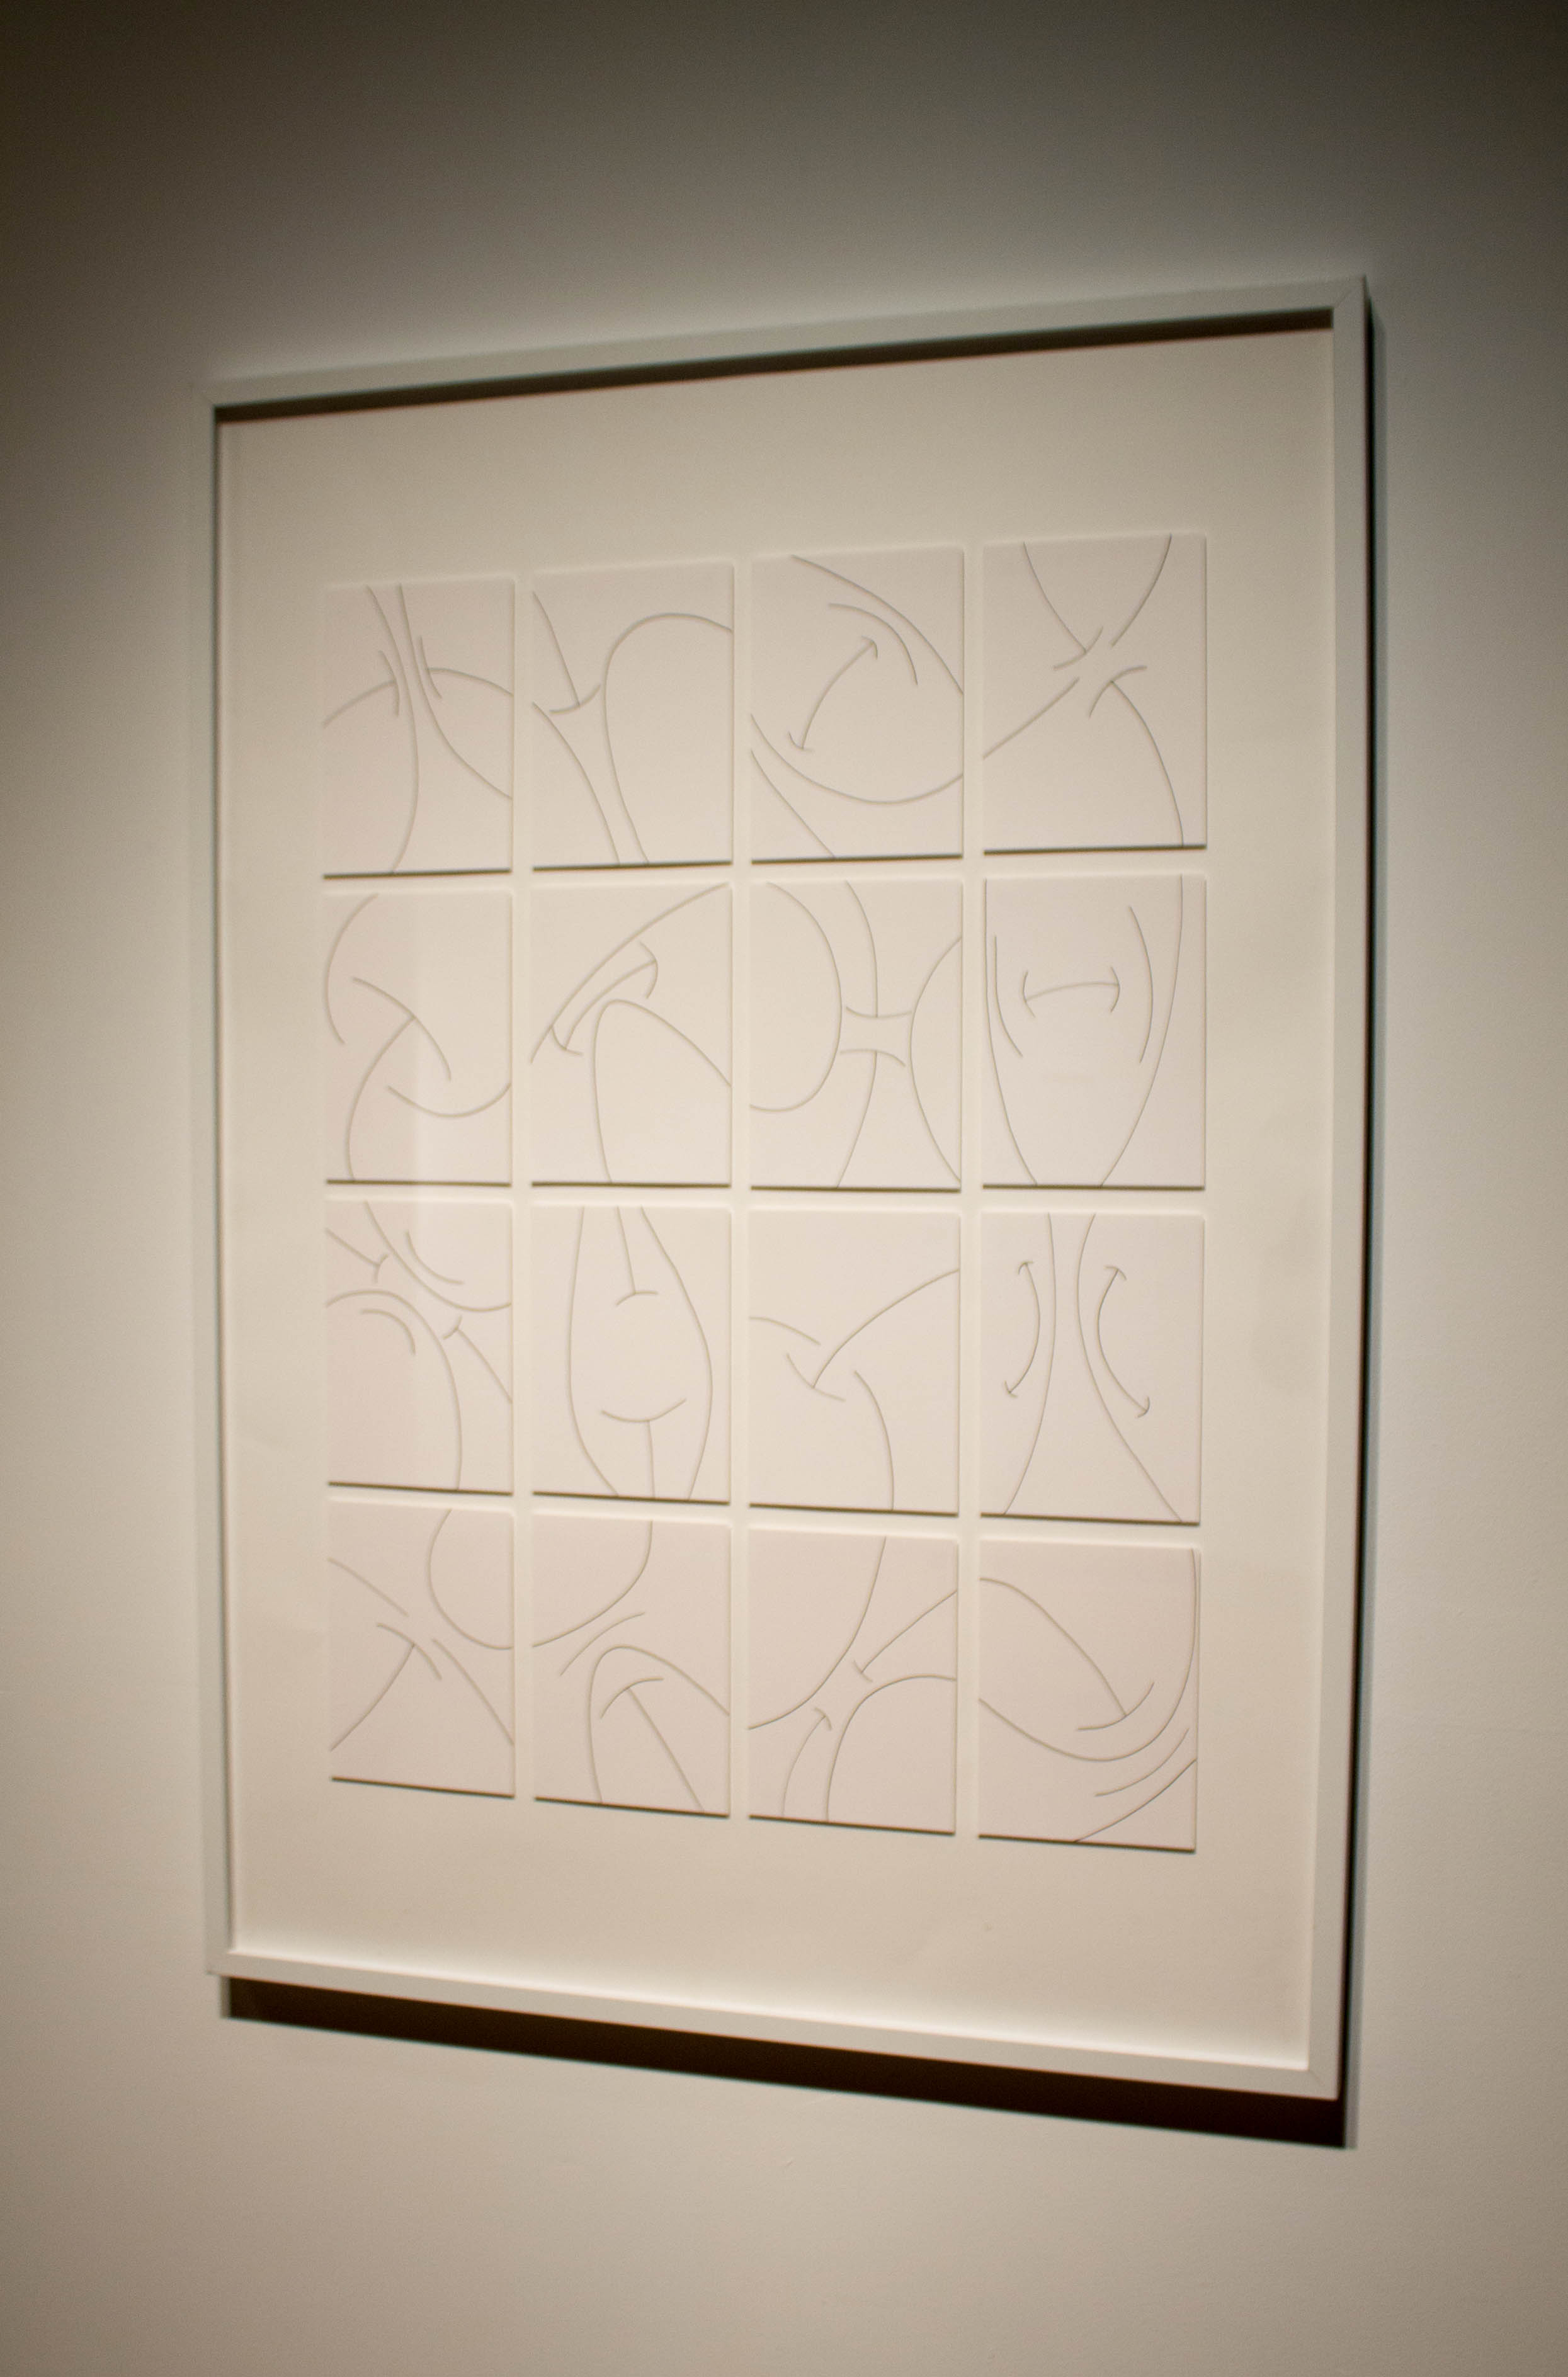 Simultaneity (Diagrams of Feeling)   - 2014 - ink on paper - 5 x 7 in. each, 27 x 39 in. mounted & framed